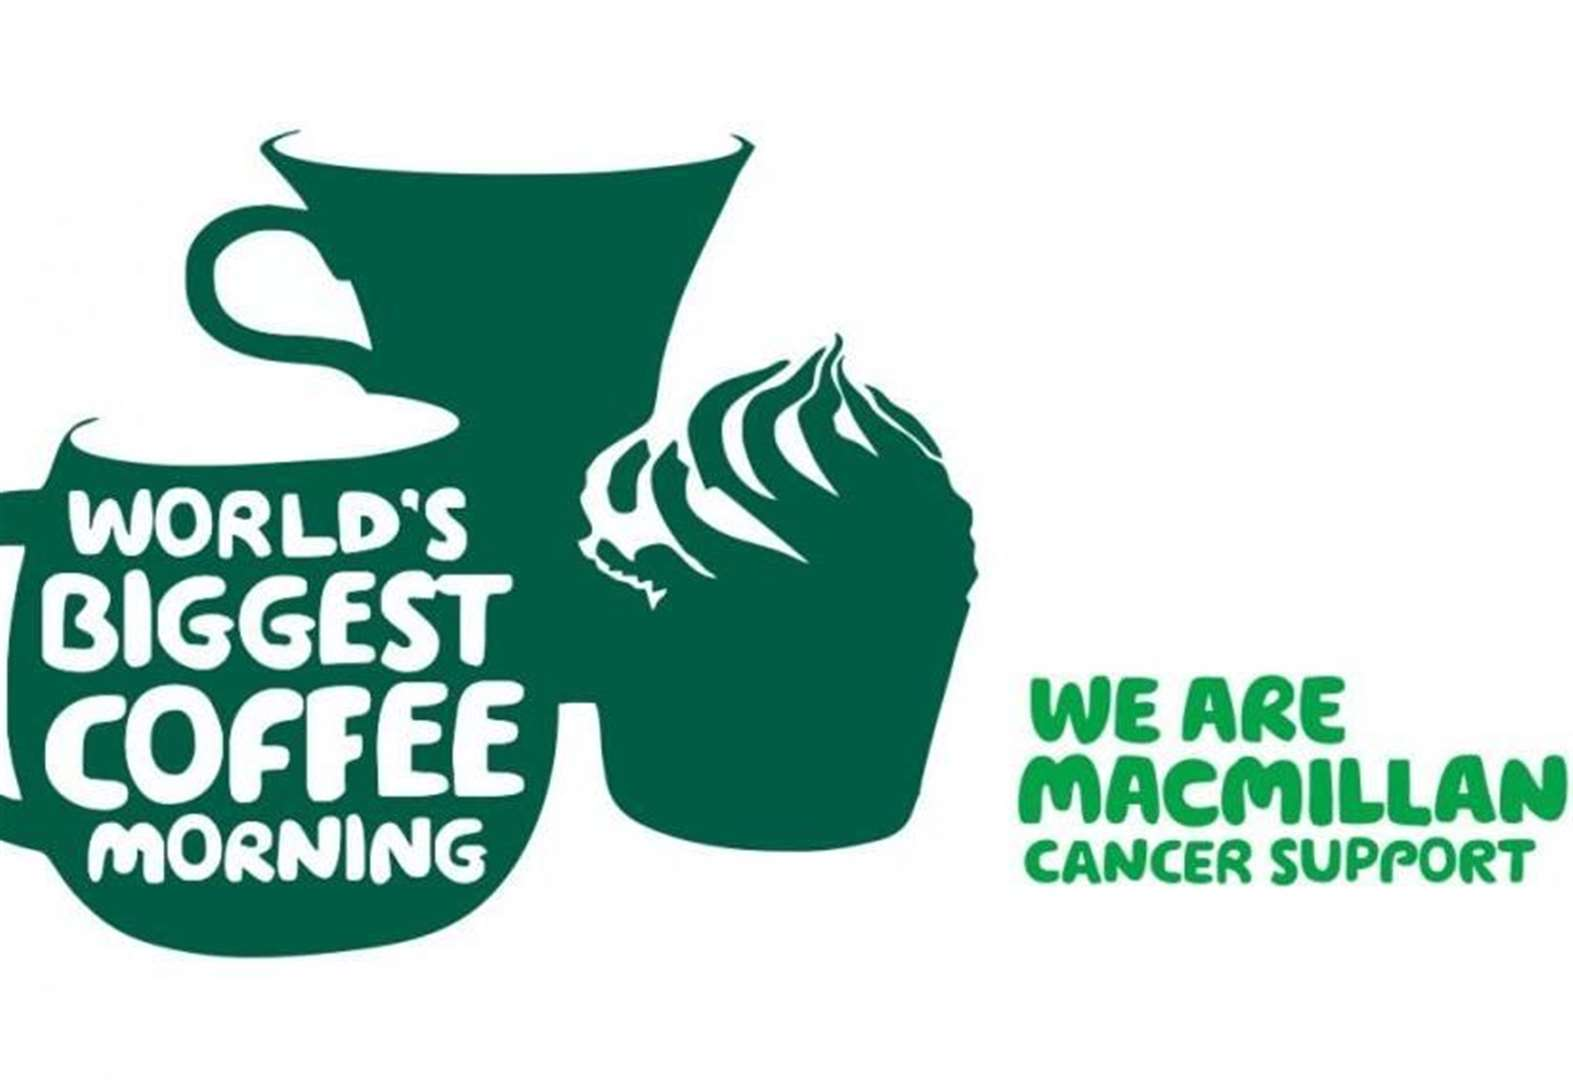 Macmillan's World's Biggest Coffee Morning events